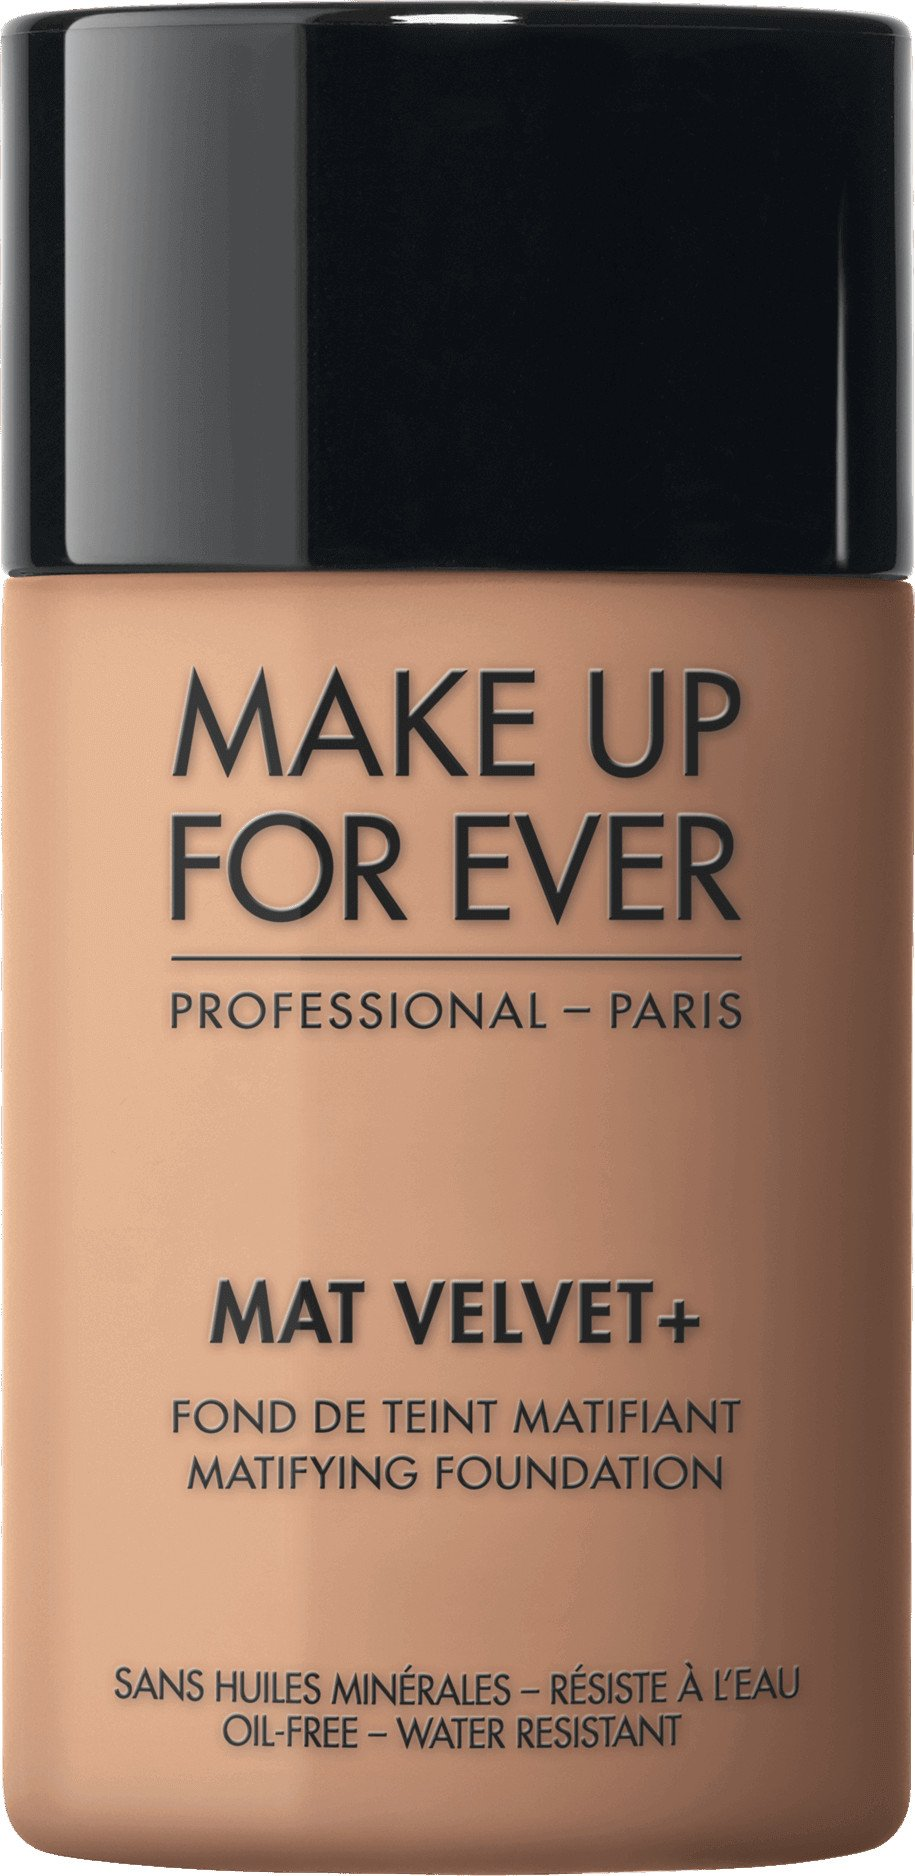 makeup forever hd microfinish powder review